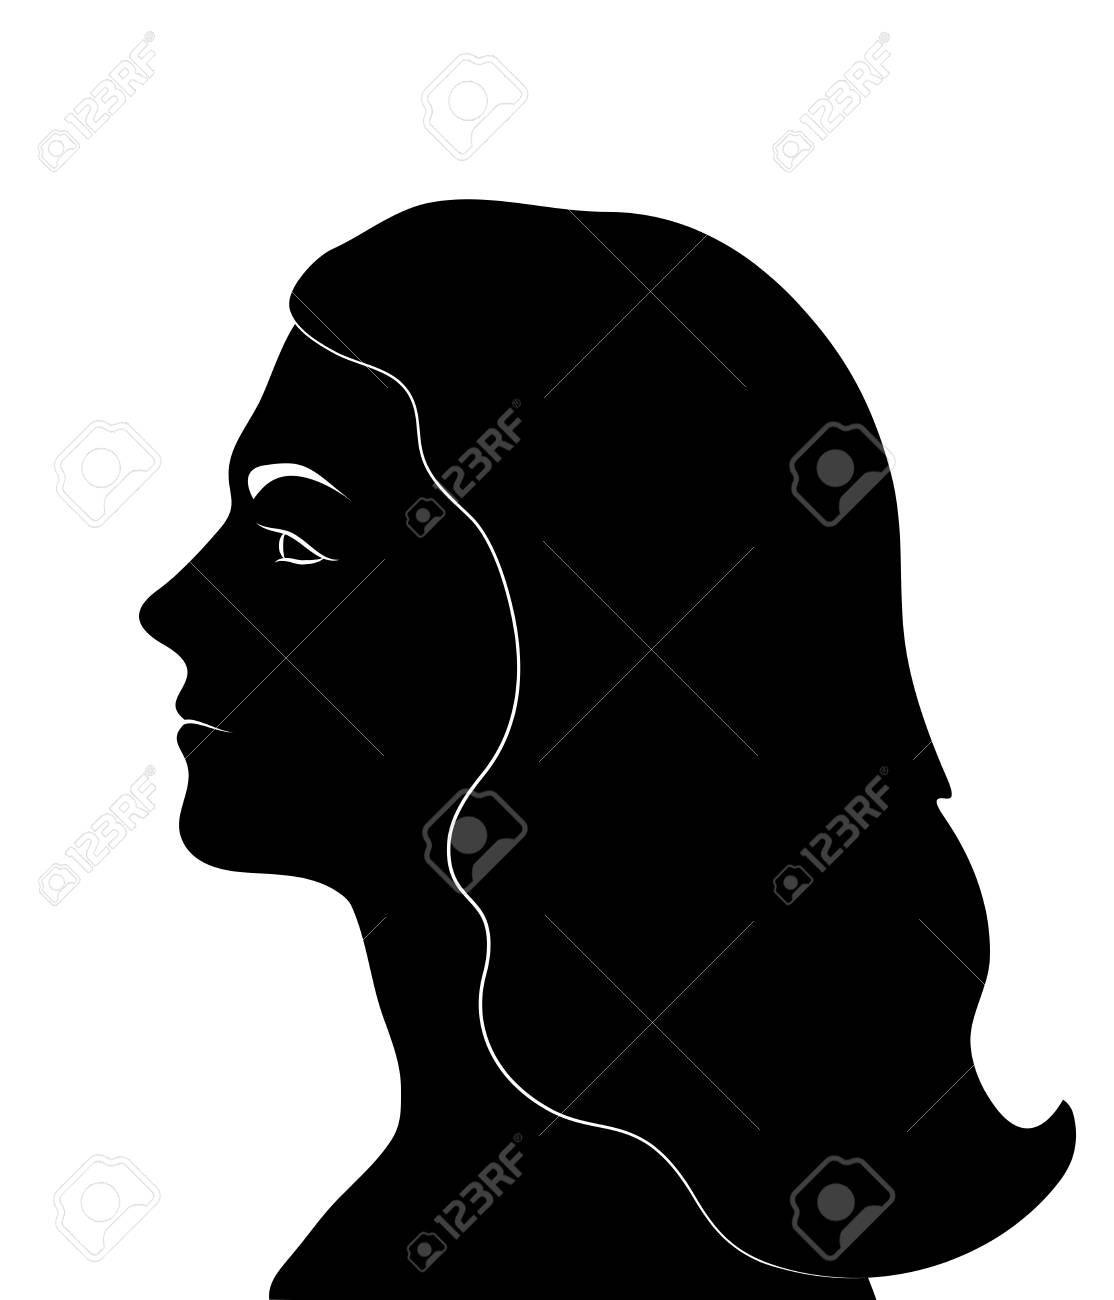 Female profile. Woman Face black silhouette. Vector illustration..